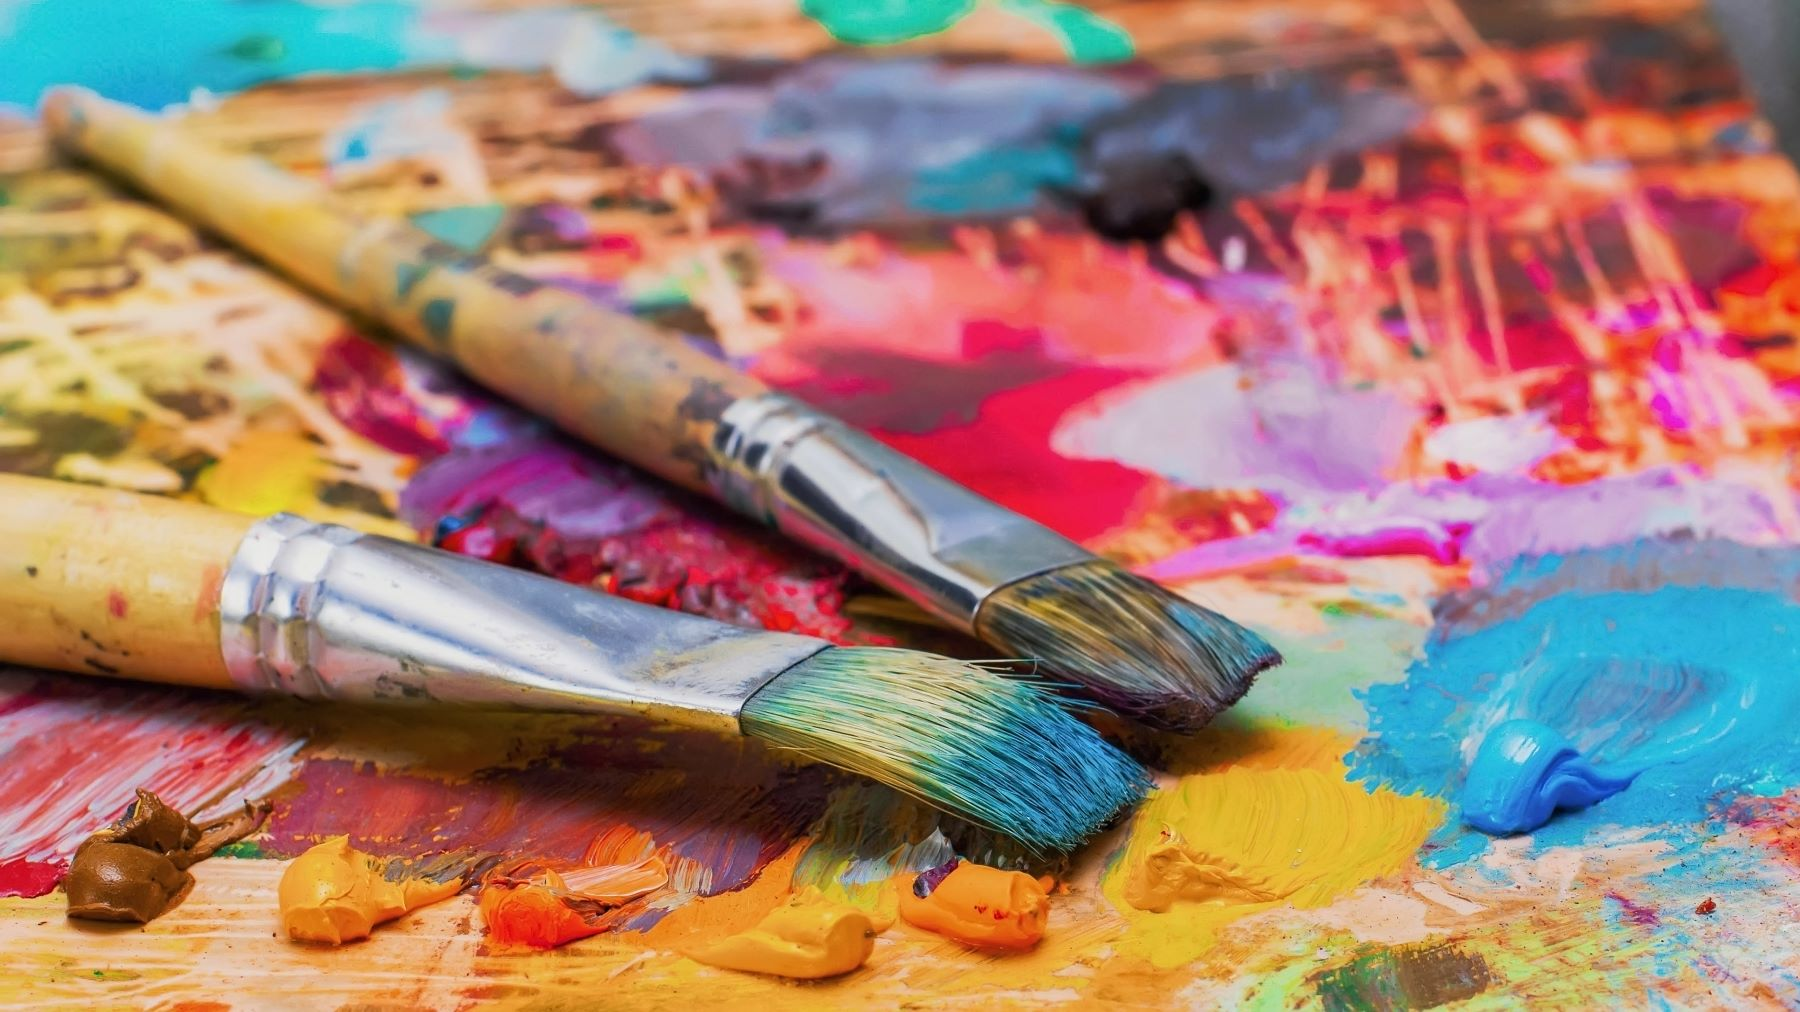 Paintbrushes and painting supplies